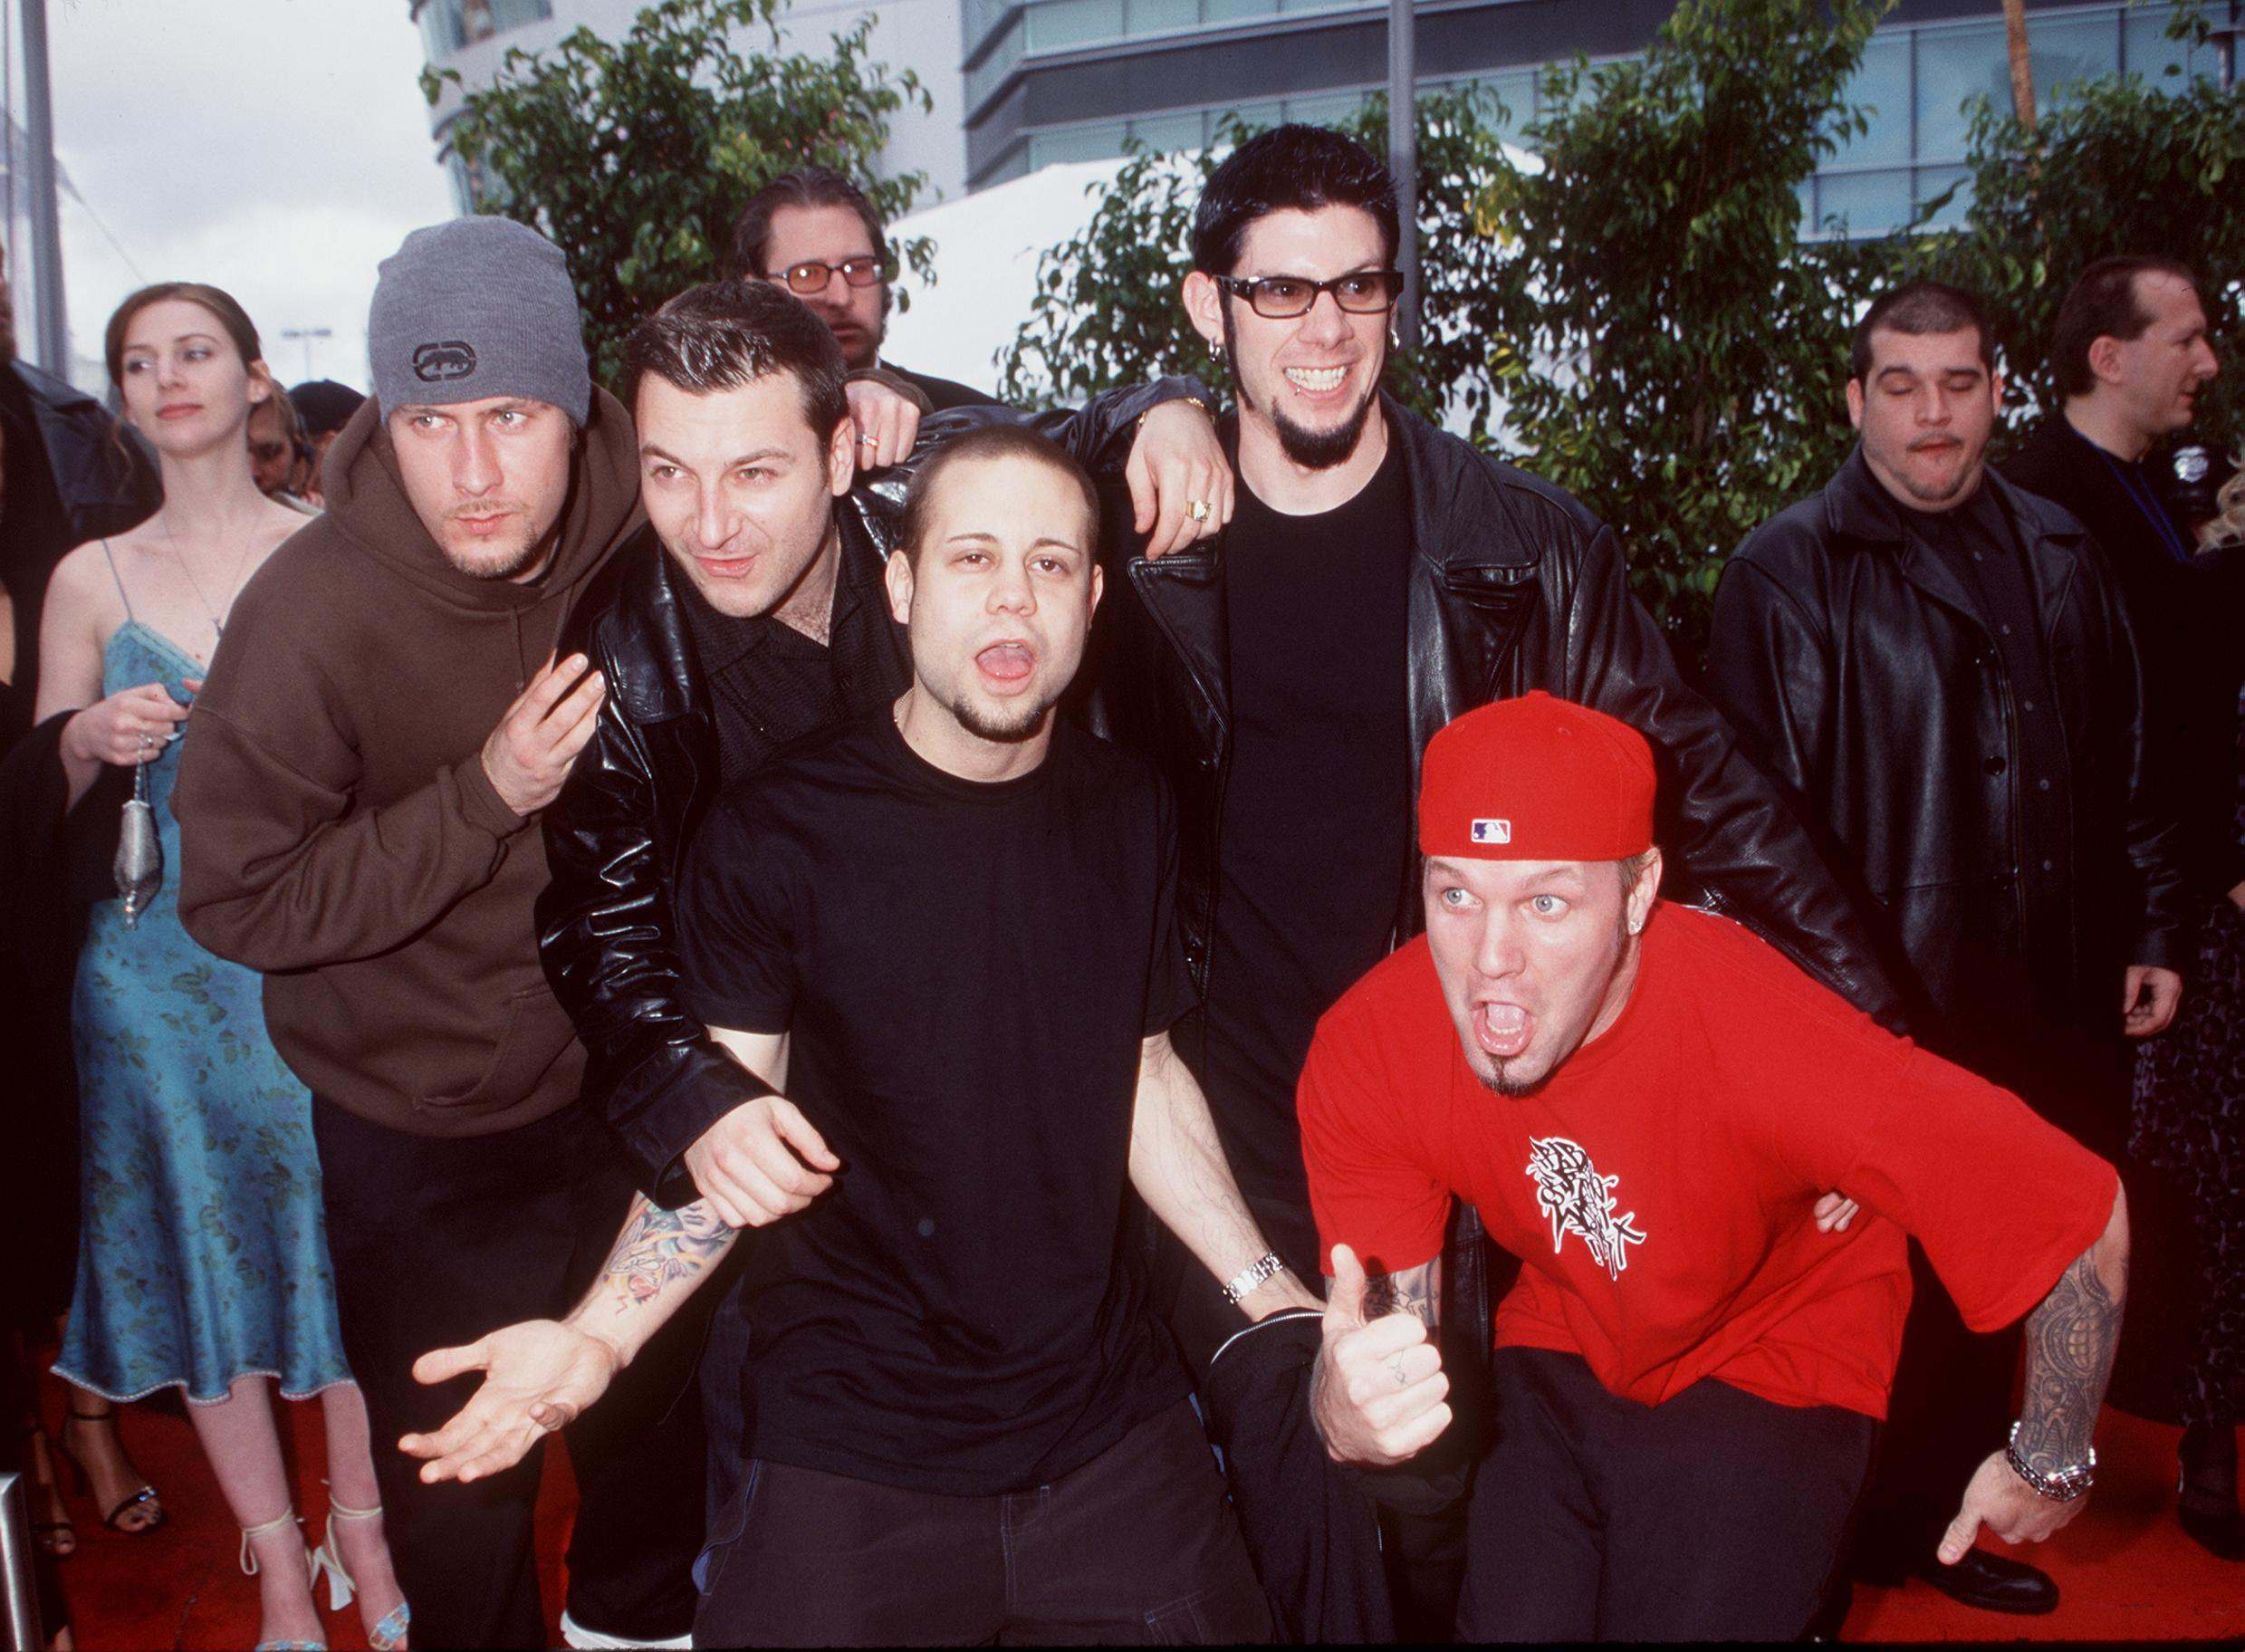 GettyImages 851780 Remember Fred Durst From Limp Bizkit? Here's What He Looks Like Now